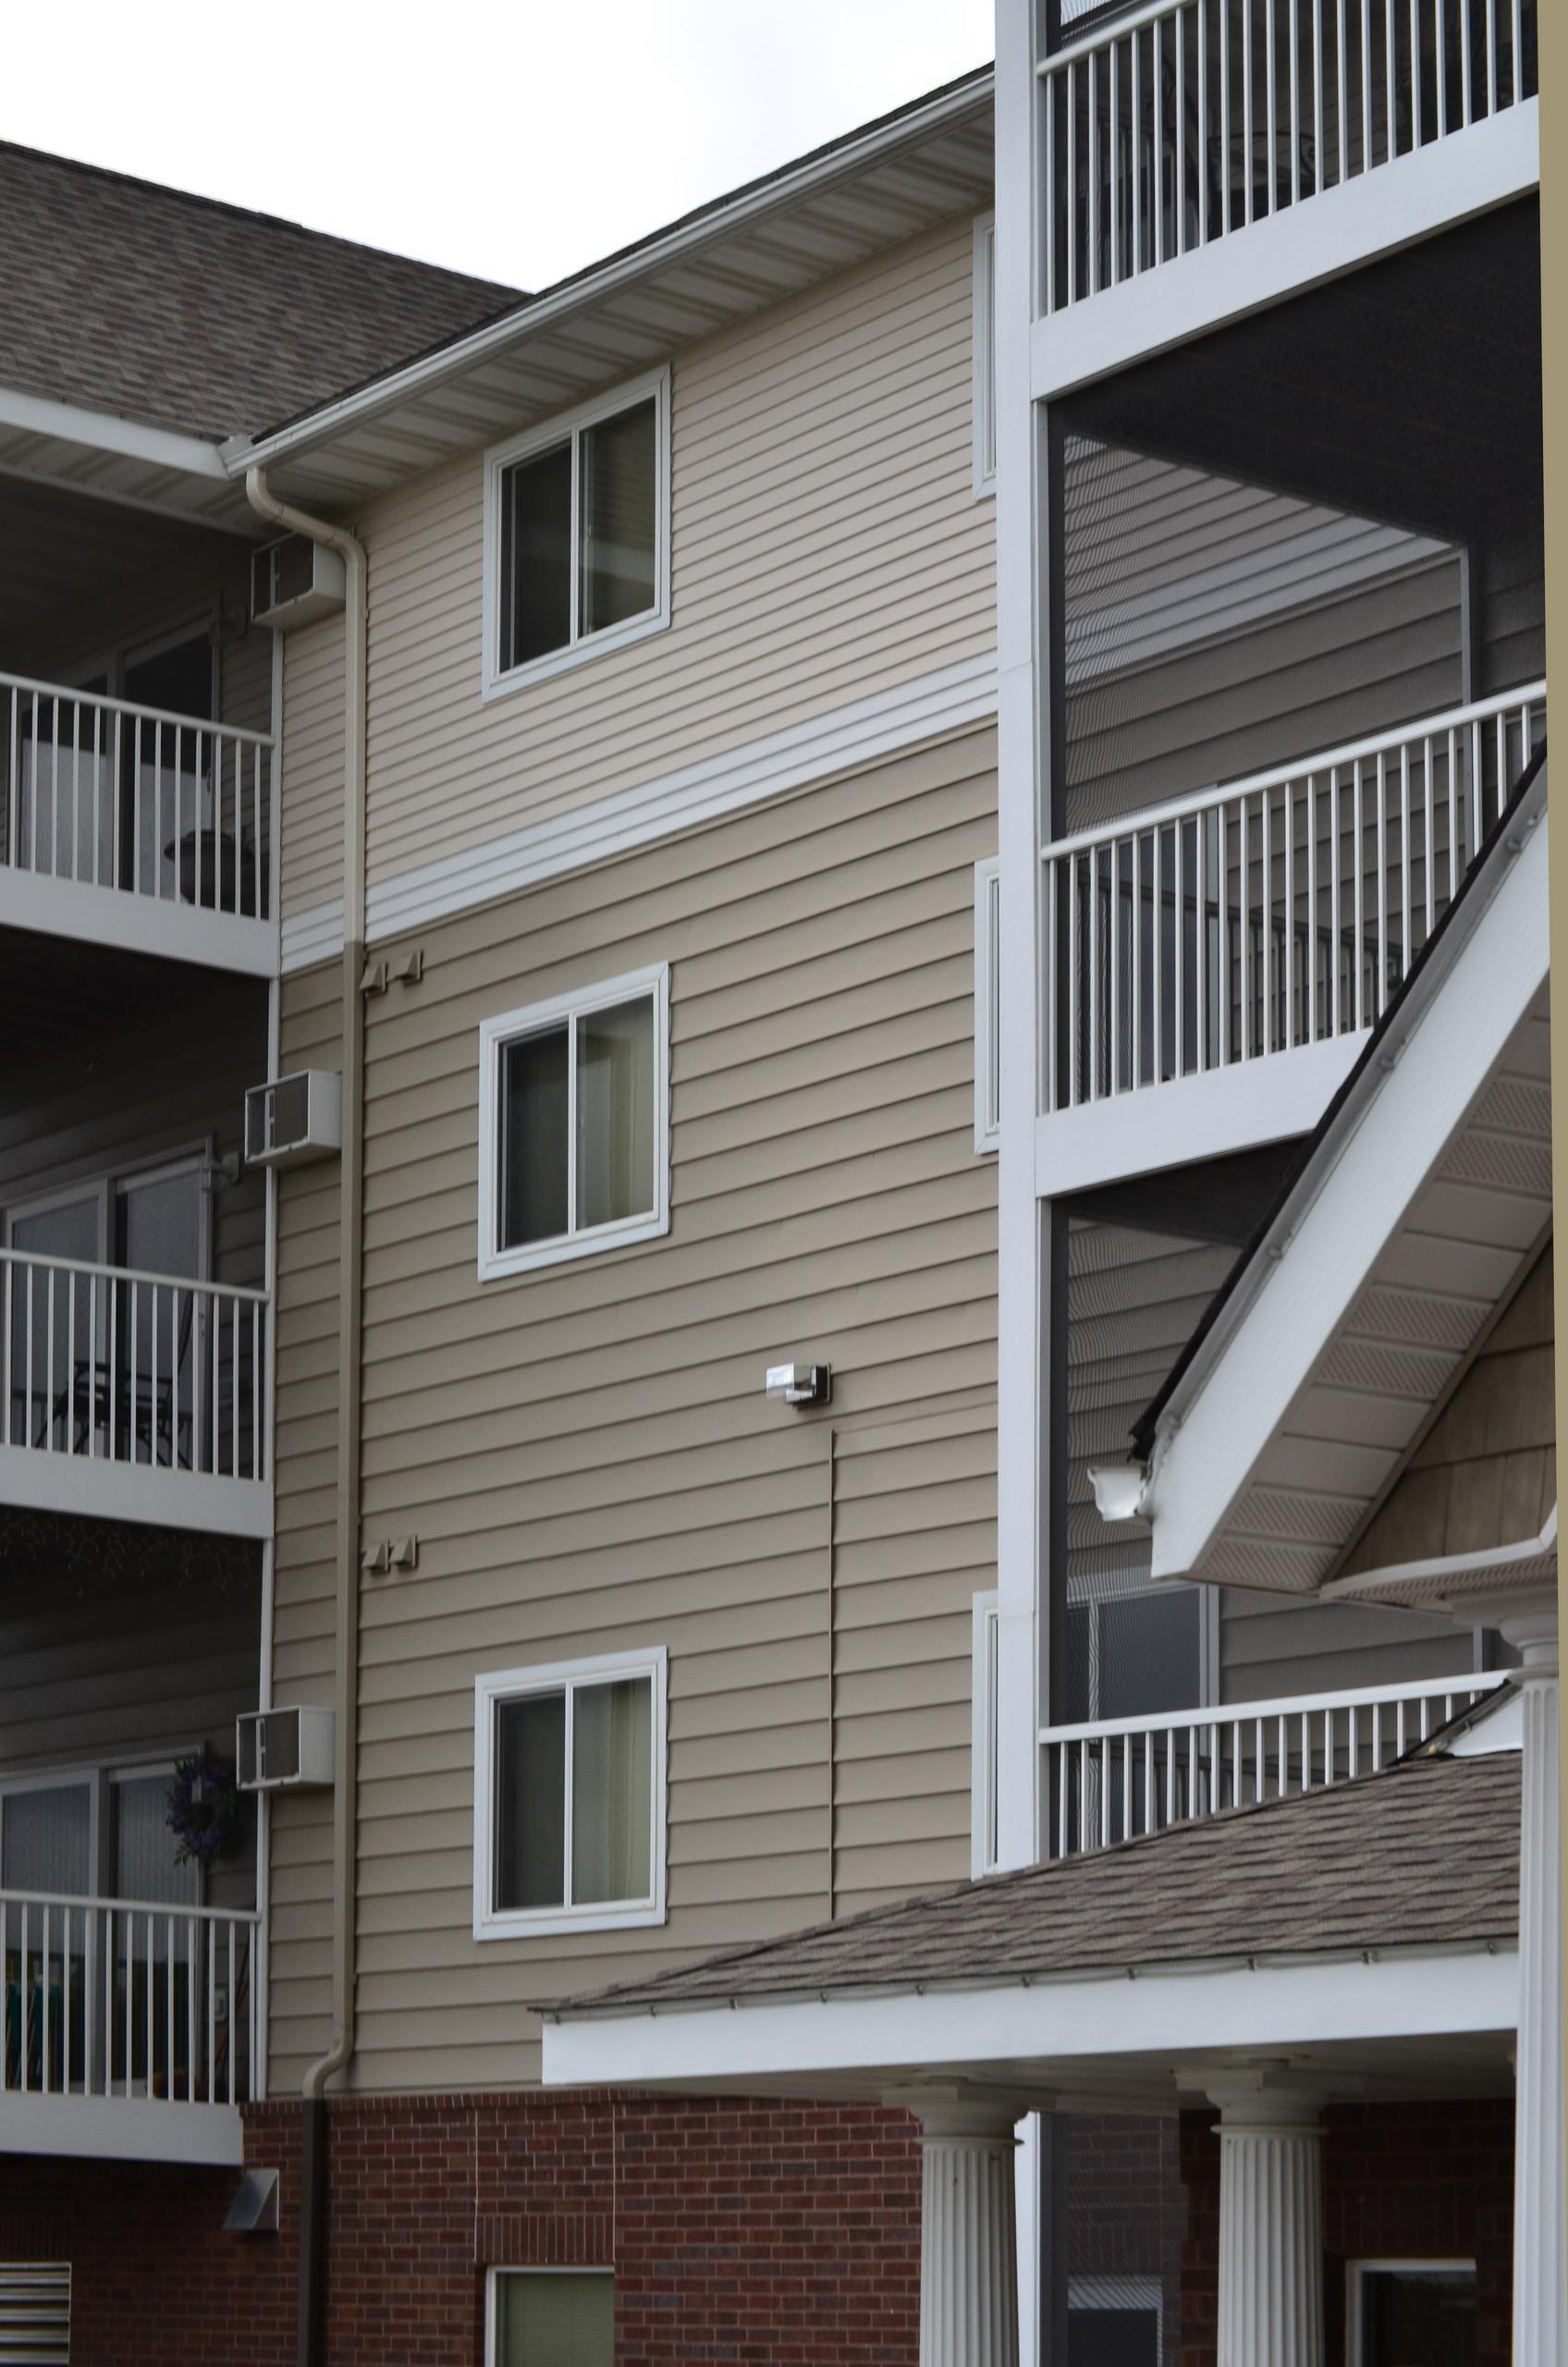 Three different types and colors of EDCO siding were used on this apartment buidling to give it a unique look to increase its curb side appeal